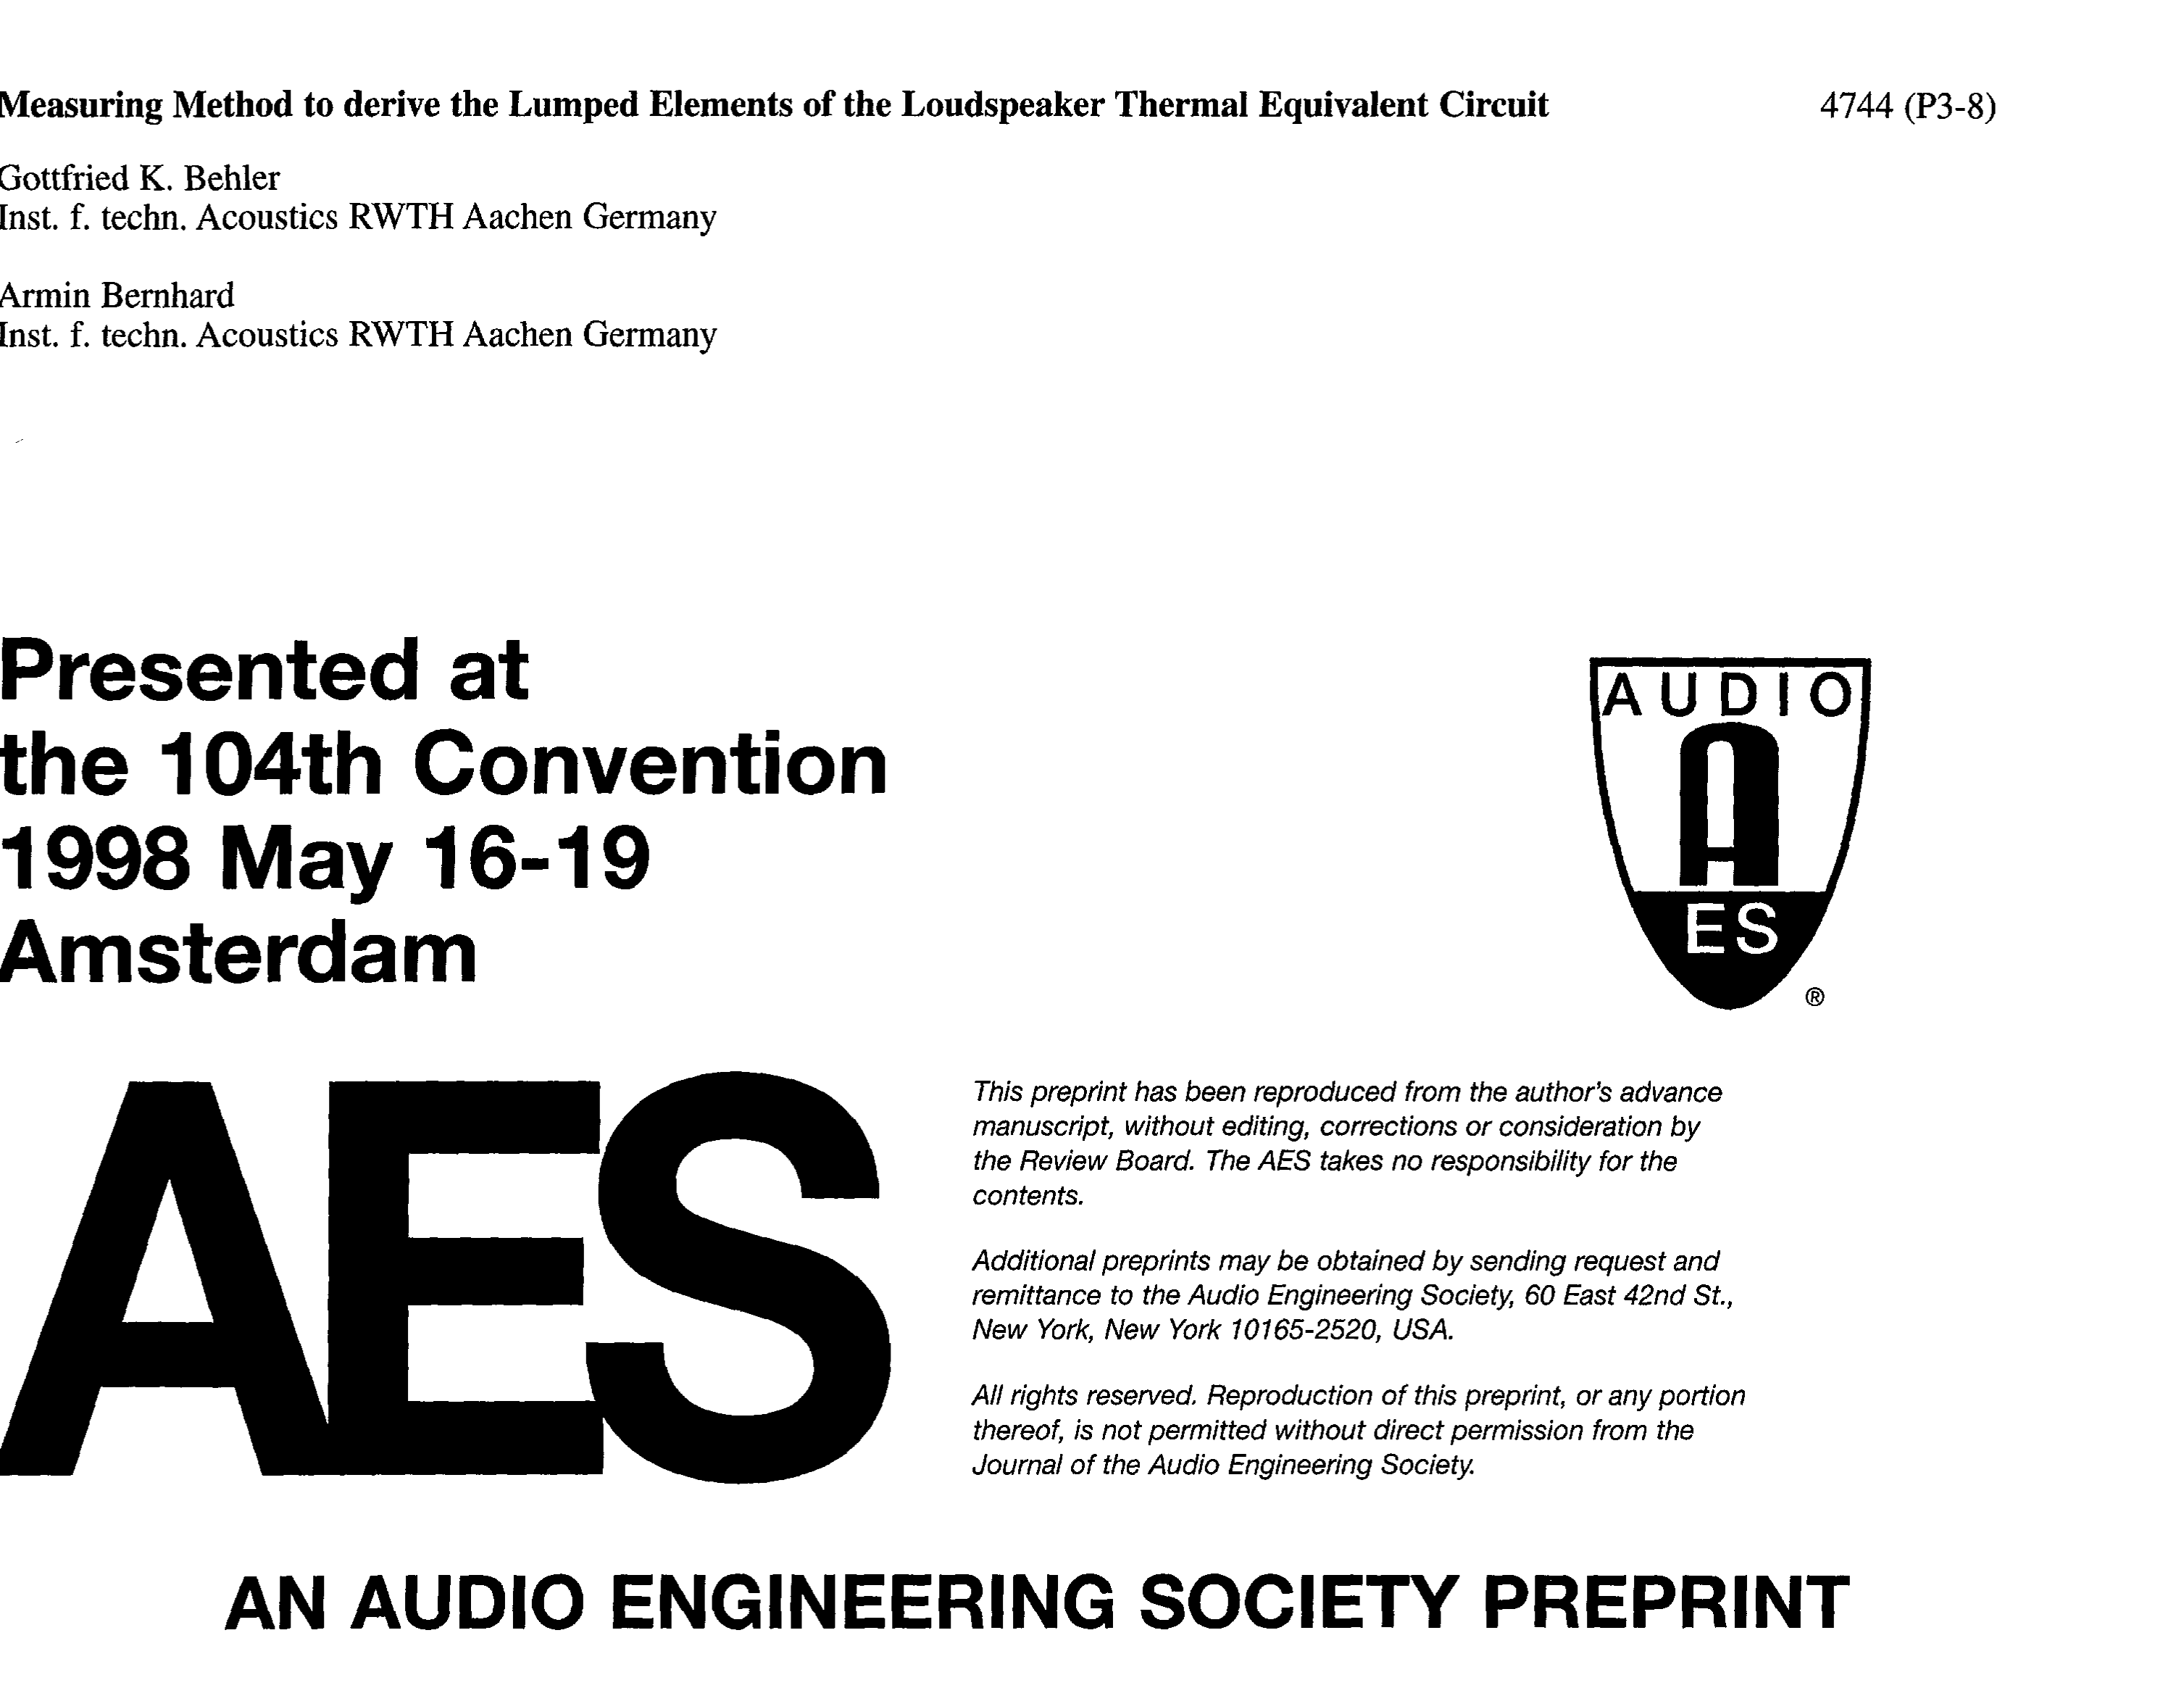 Aes E Library Measuring Method To Derive The Lumped Elements Of Circuit Compact Without Generating Heat As Capacitor C1 Dissipates Loudspeaker Thermal Equivalent